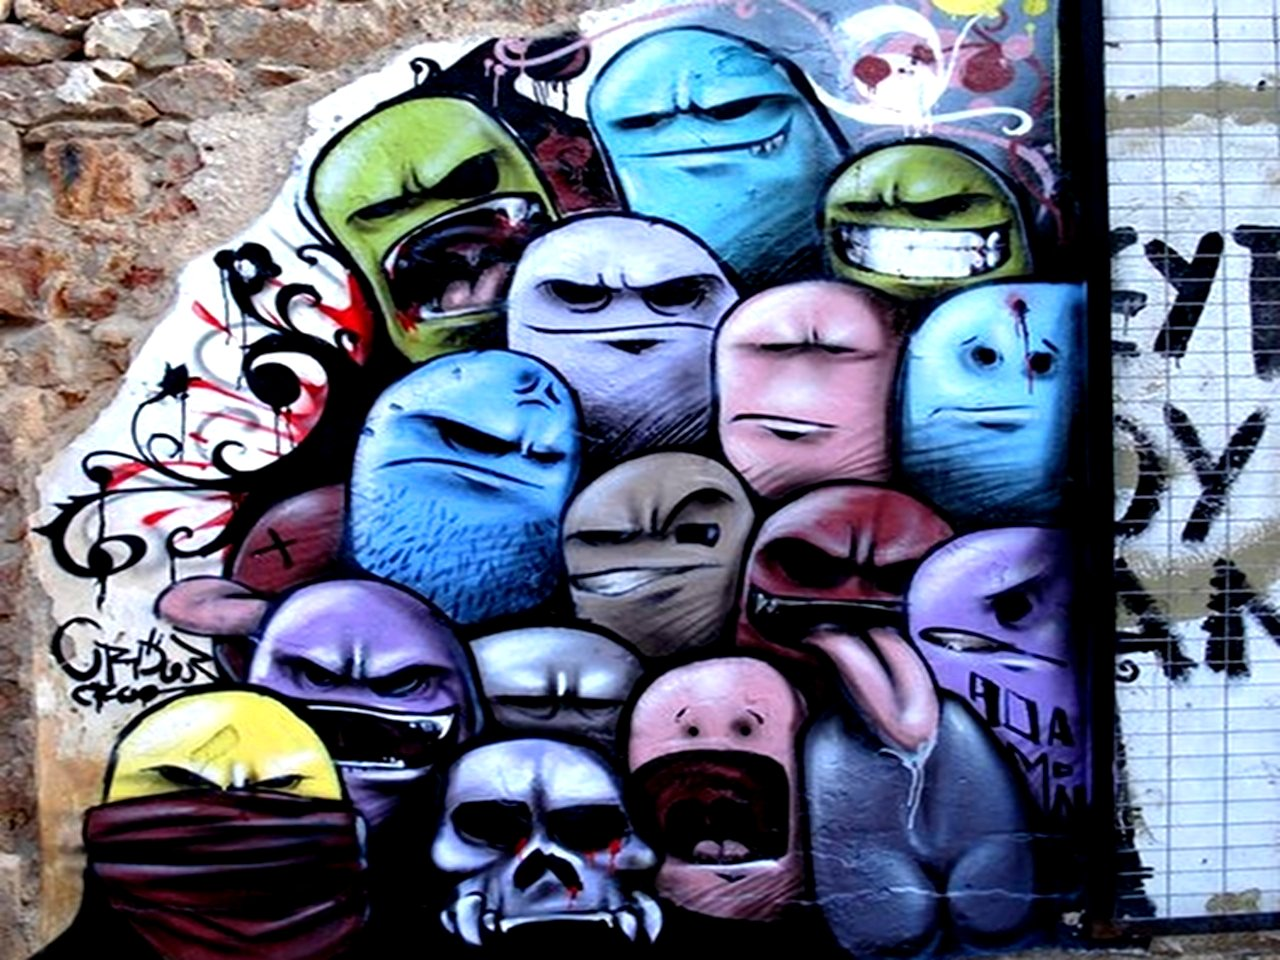 Cool Graffiti   Wallpapers Images Pictures Pics Wallpapers Wall 1280x960